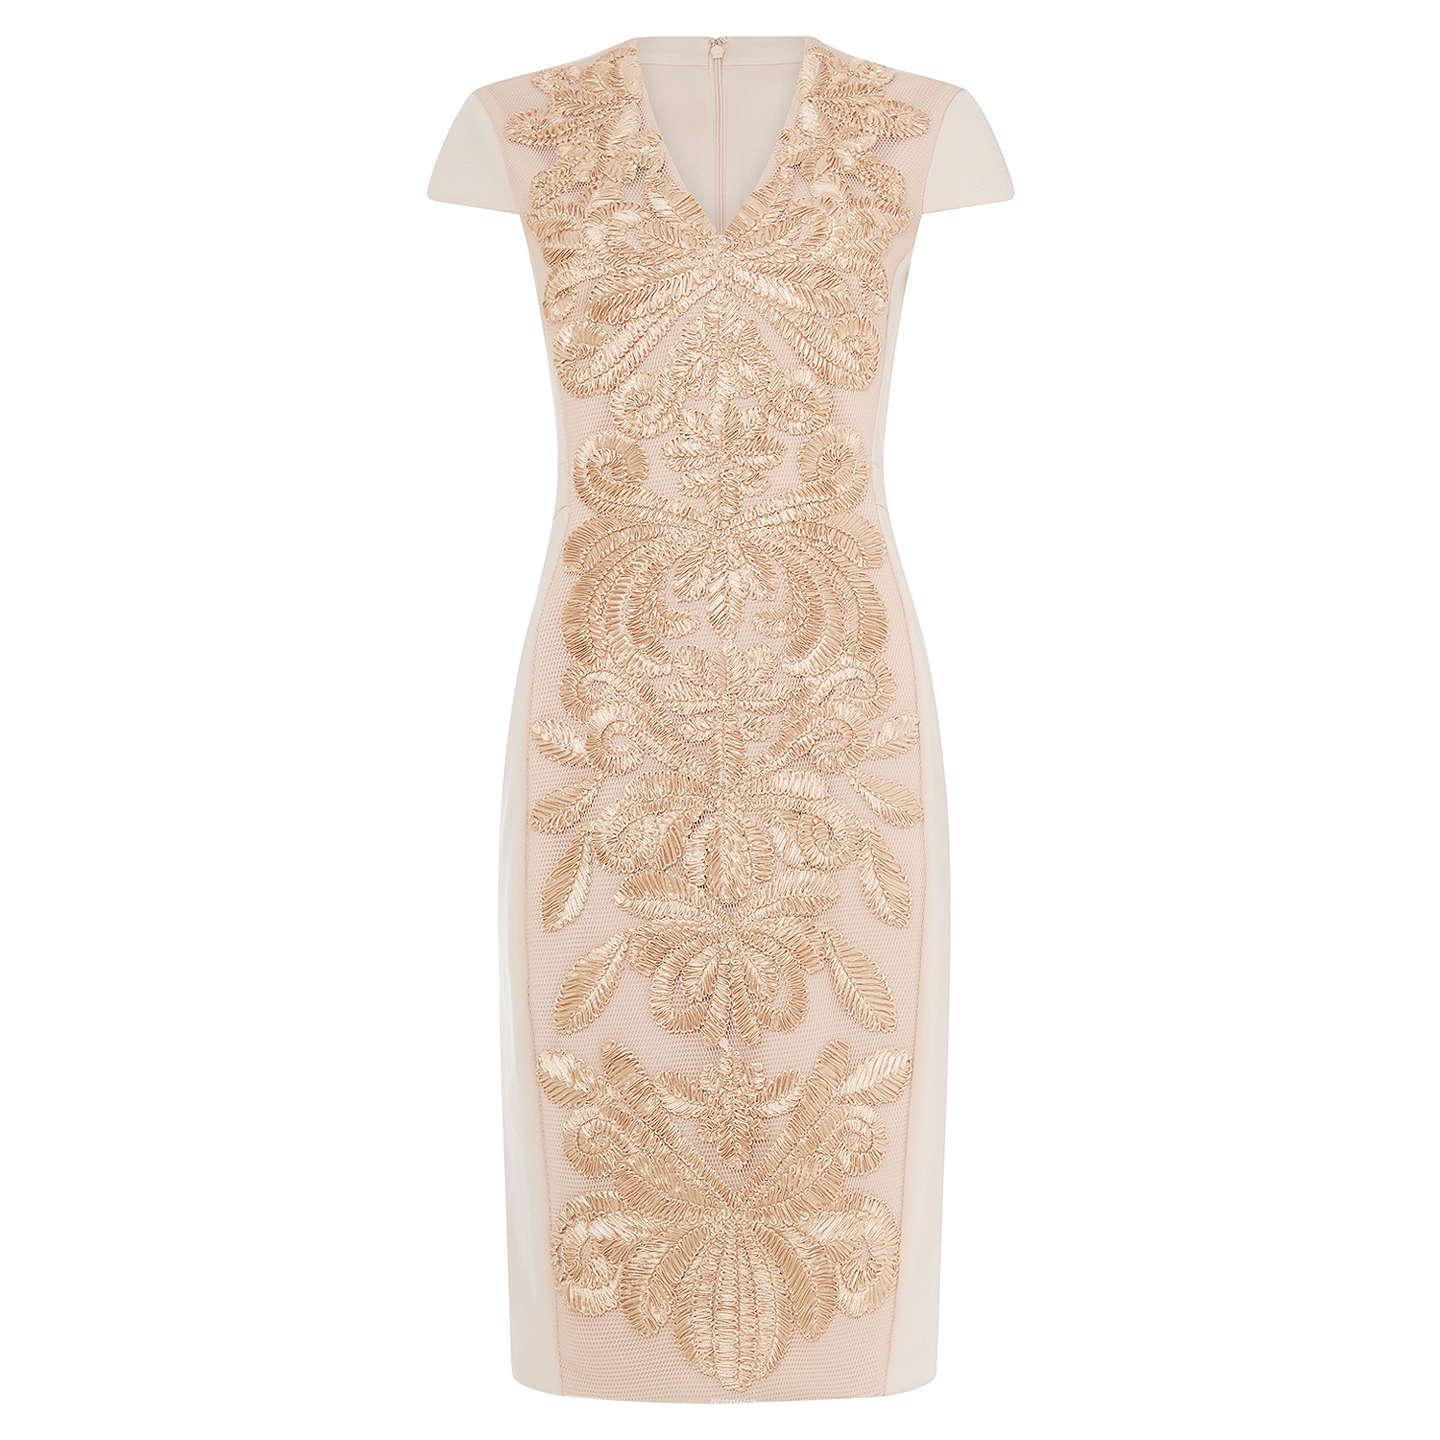 BuyPhase Eight Laurie Embroidered Dress, Soft Pink, 8 Online at johnlewis.com